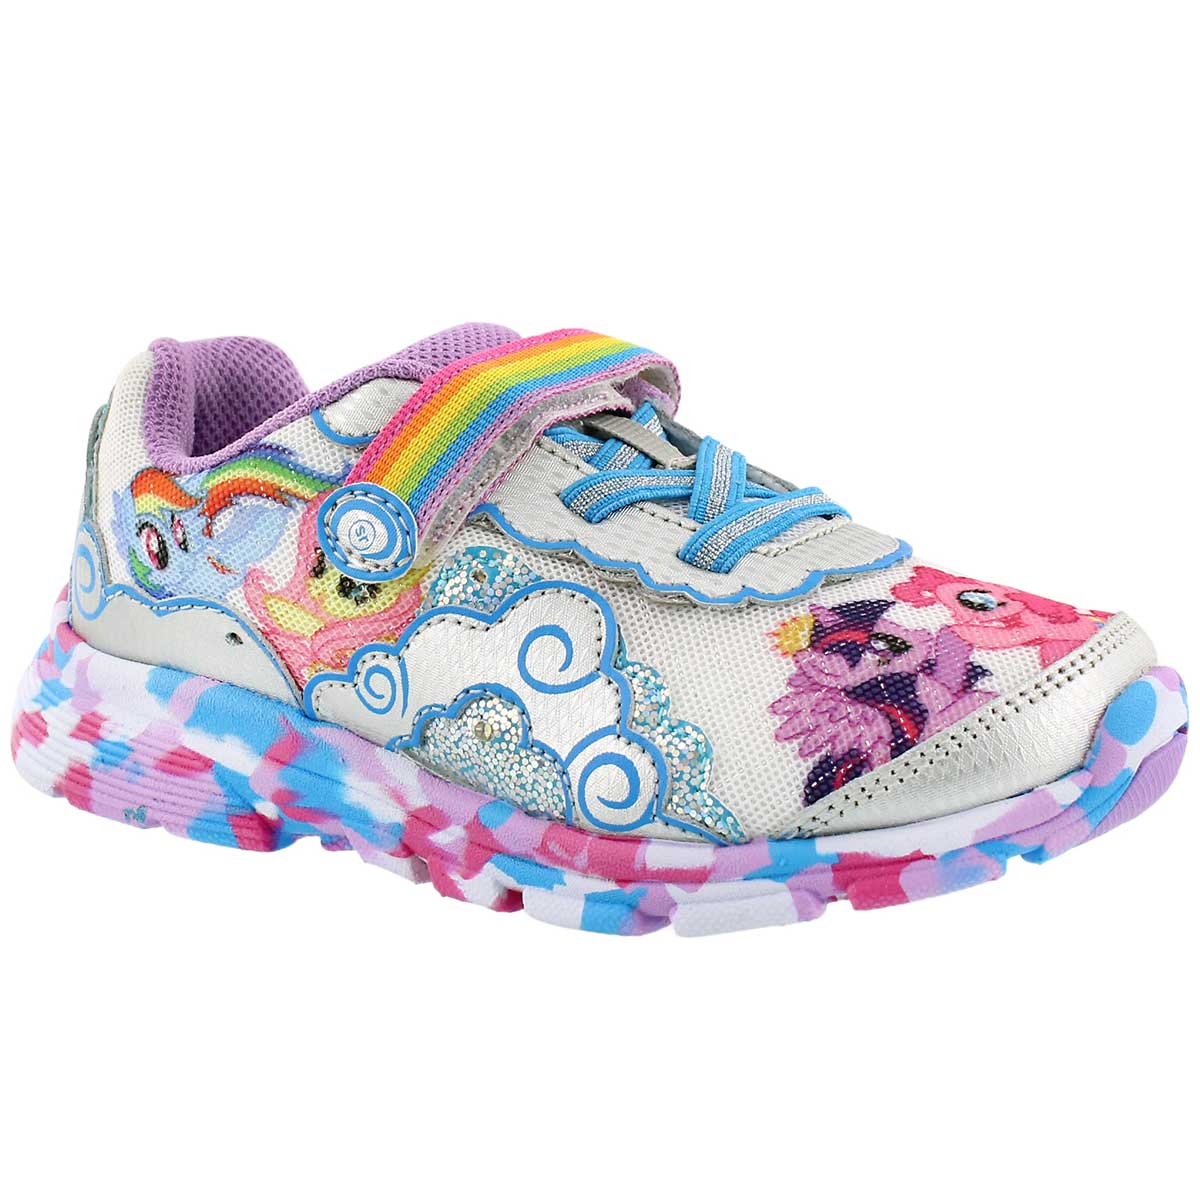 Girls' MY LITTLE PONY EQUESTRIA silver sneakers